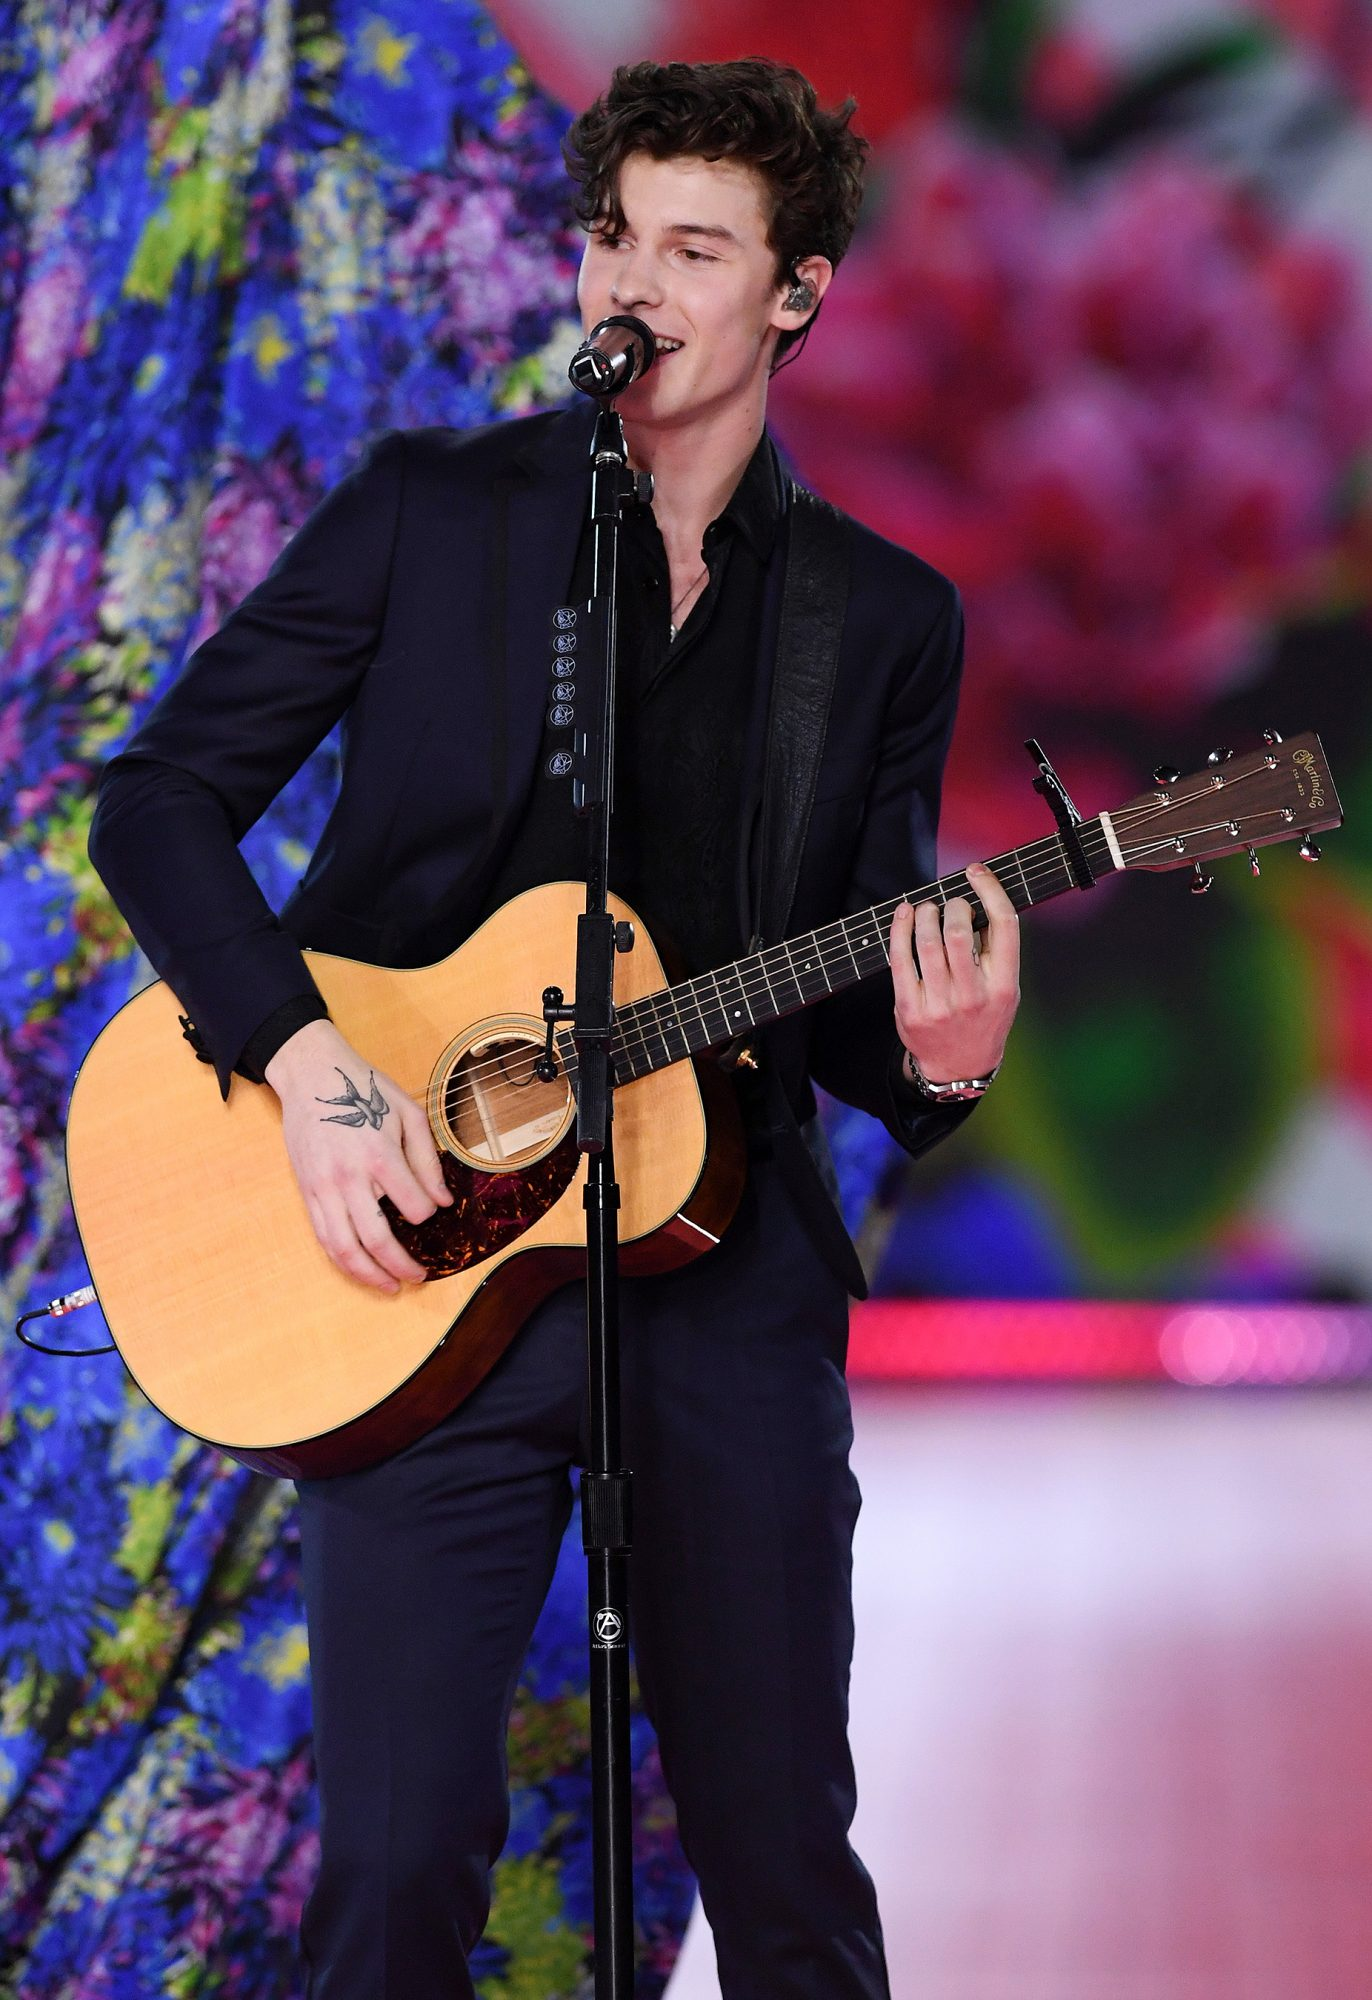 Shawn Mendes performing on the catwalk